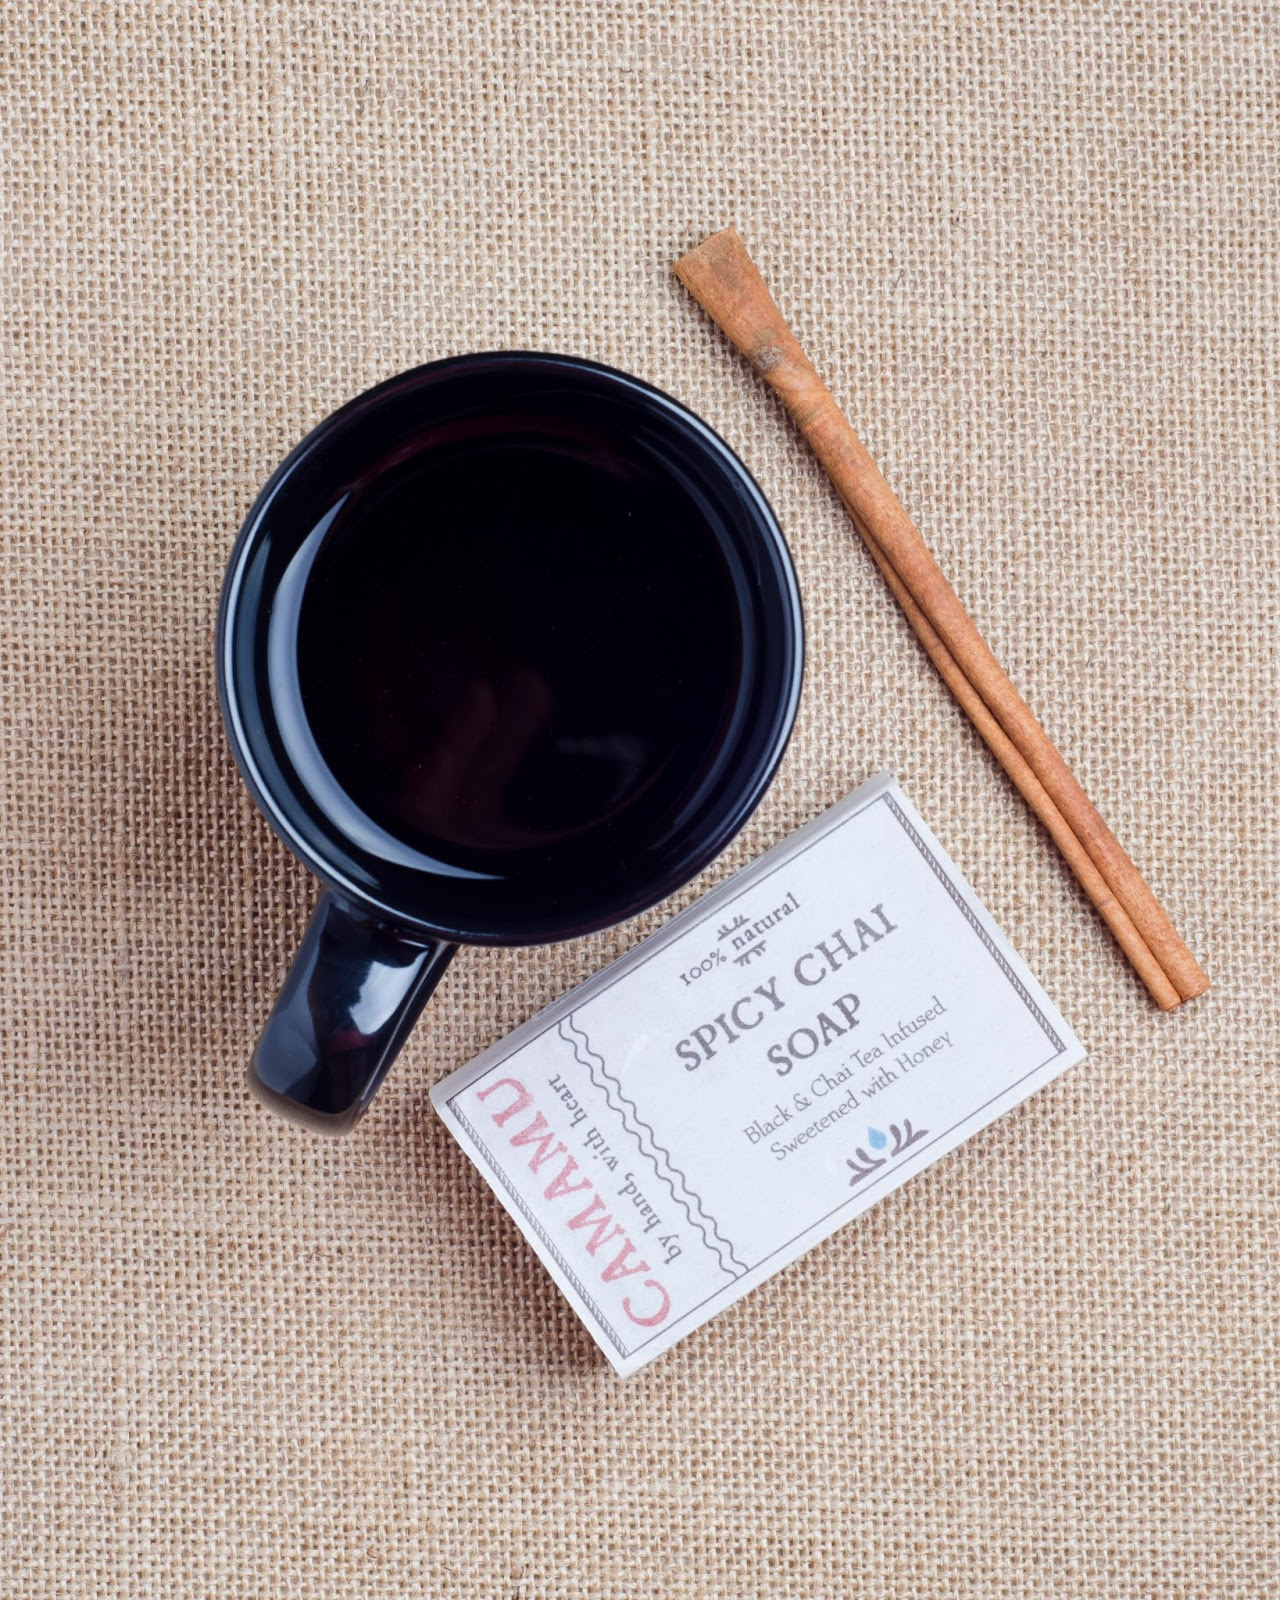 Camamu Spicy Chai Soap flatlay with mug of tea and a cinnamon stick